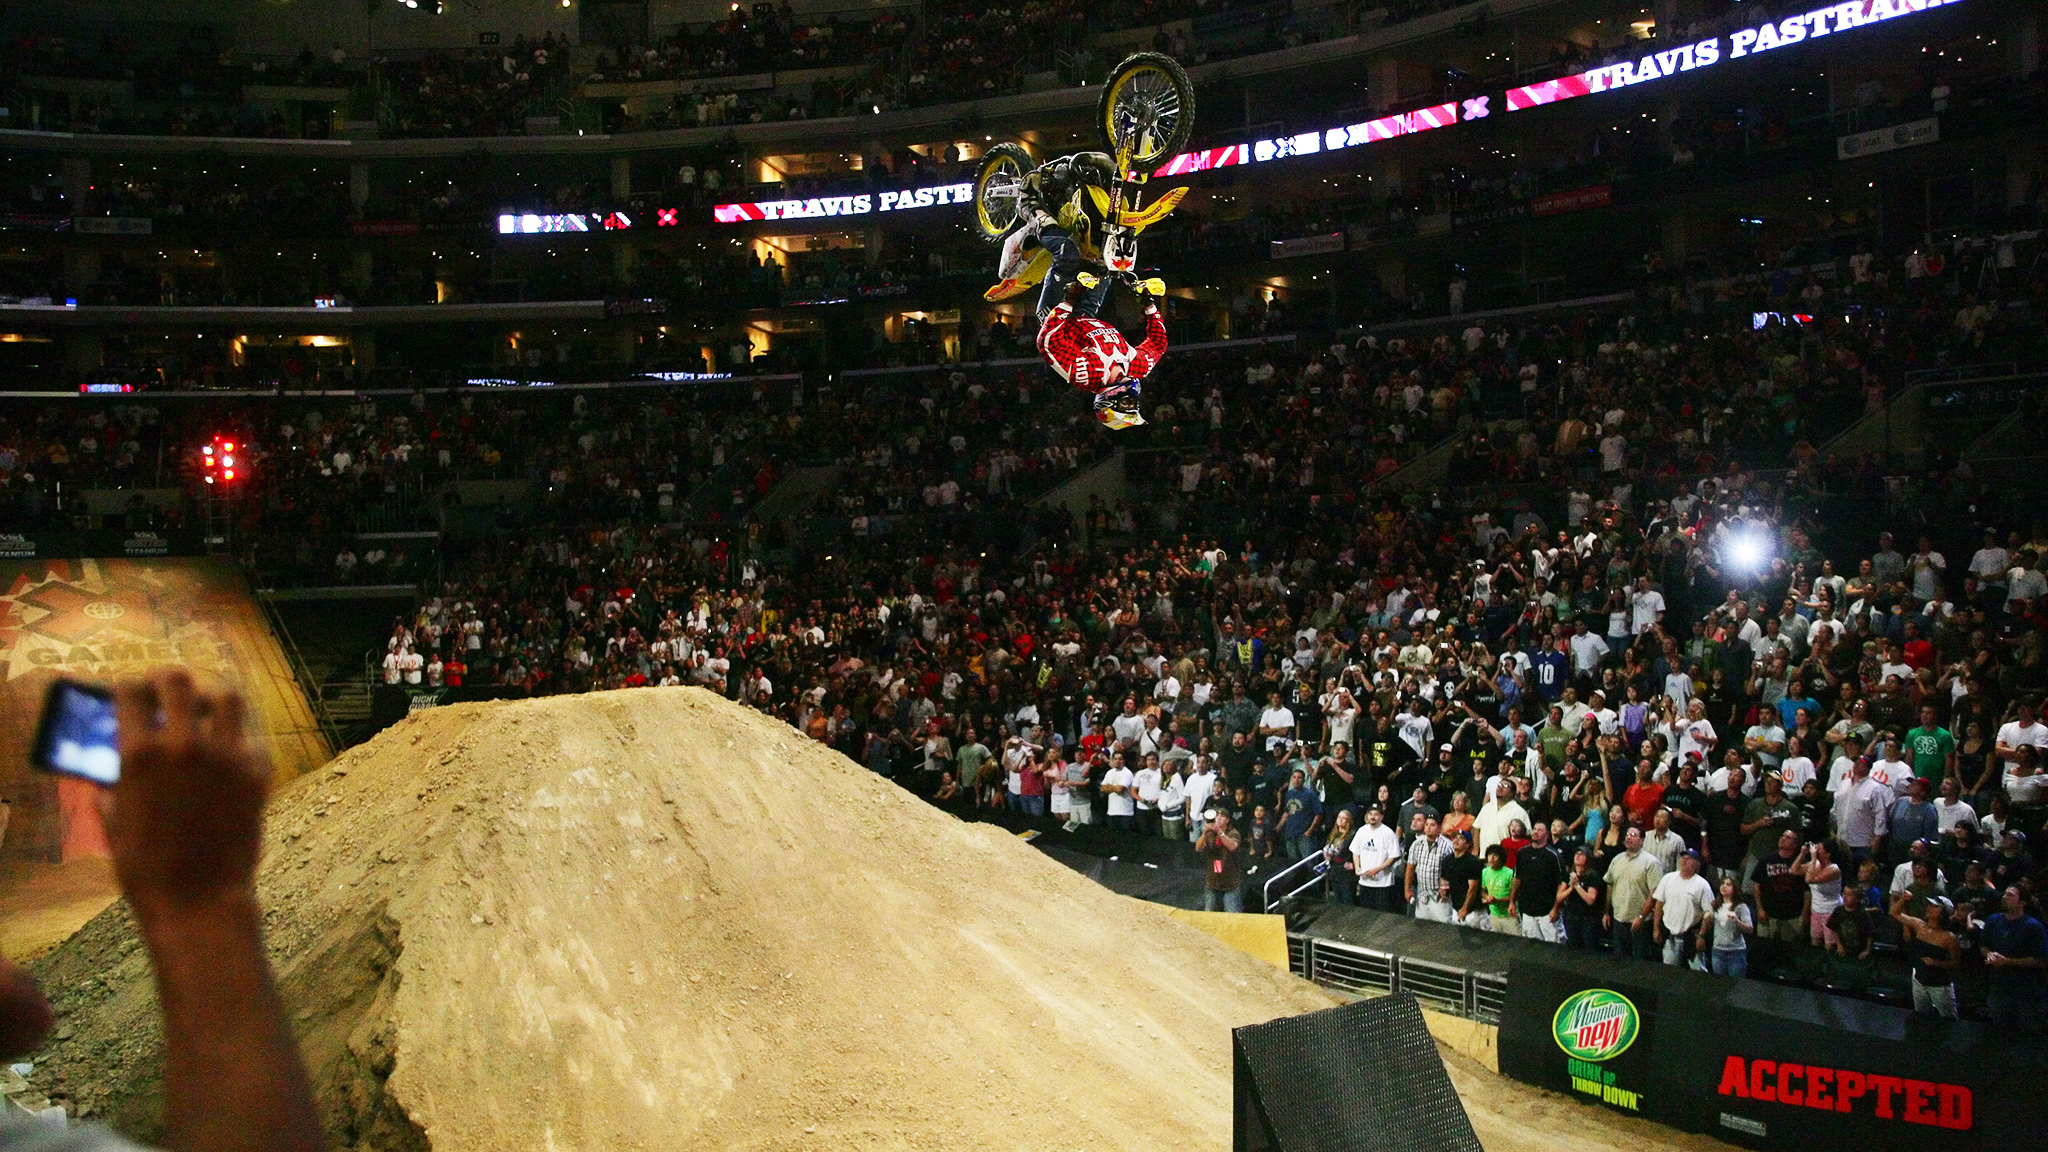 Travis Pastrana shocked the Staples Center crowd in 2006 as he completed the first-ever double backflip on a motorcycle to win Moto X Best Trick at X Games Los Angeles.